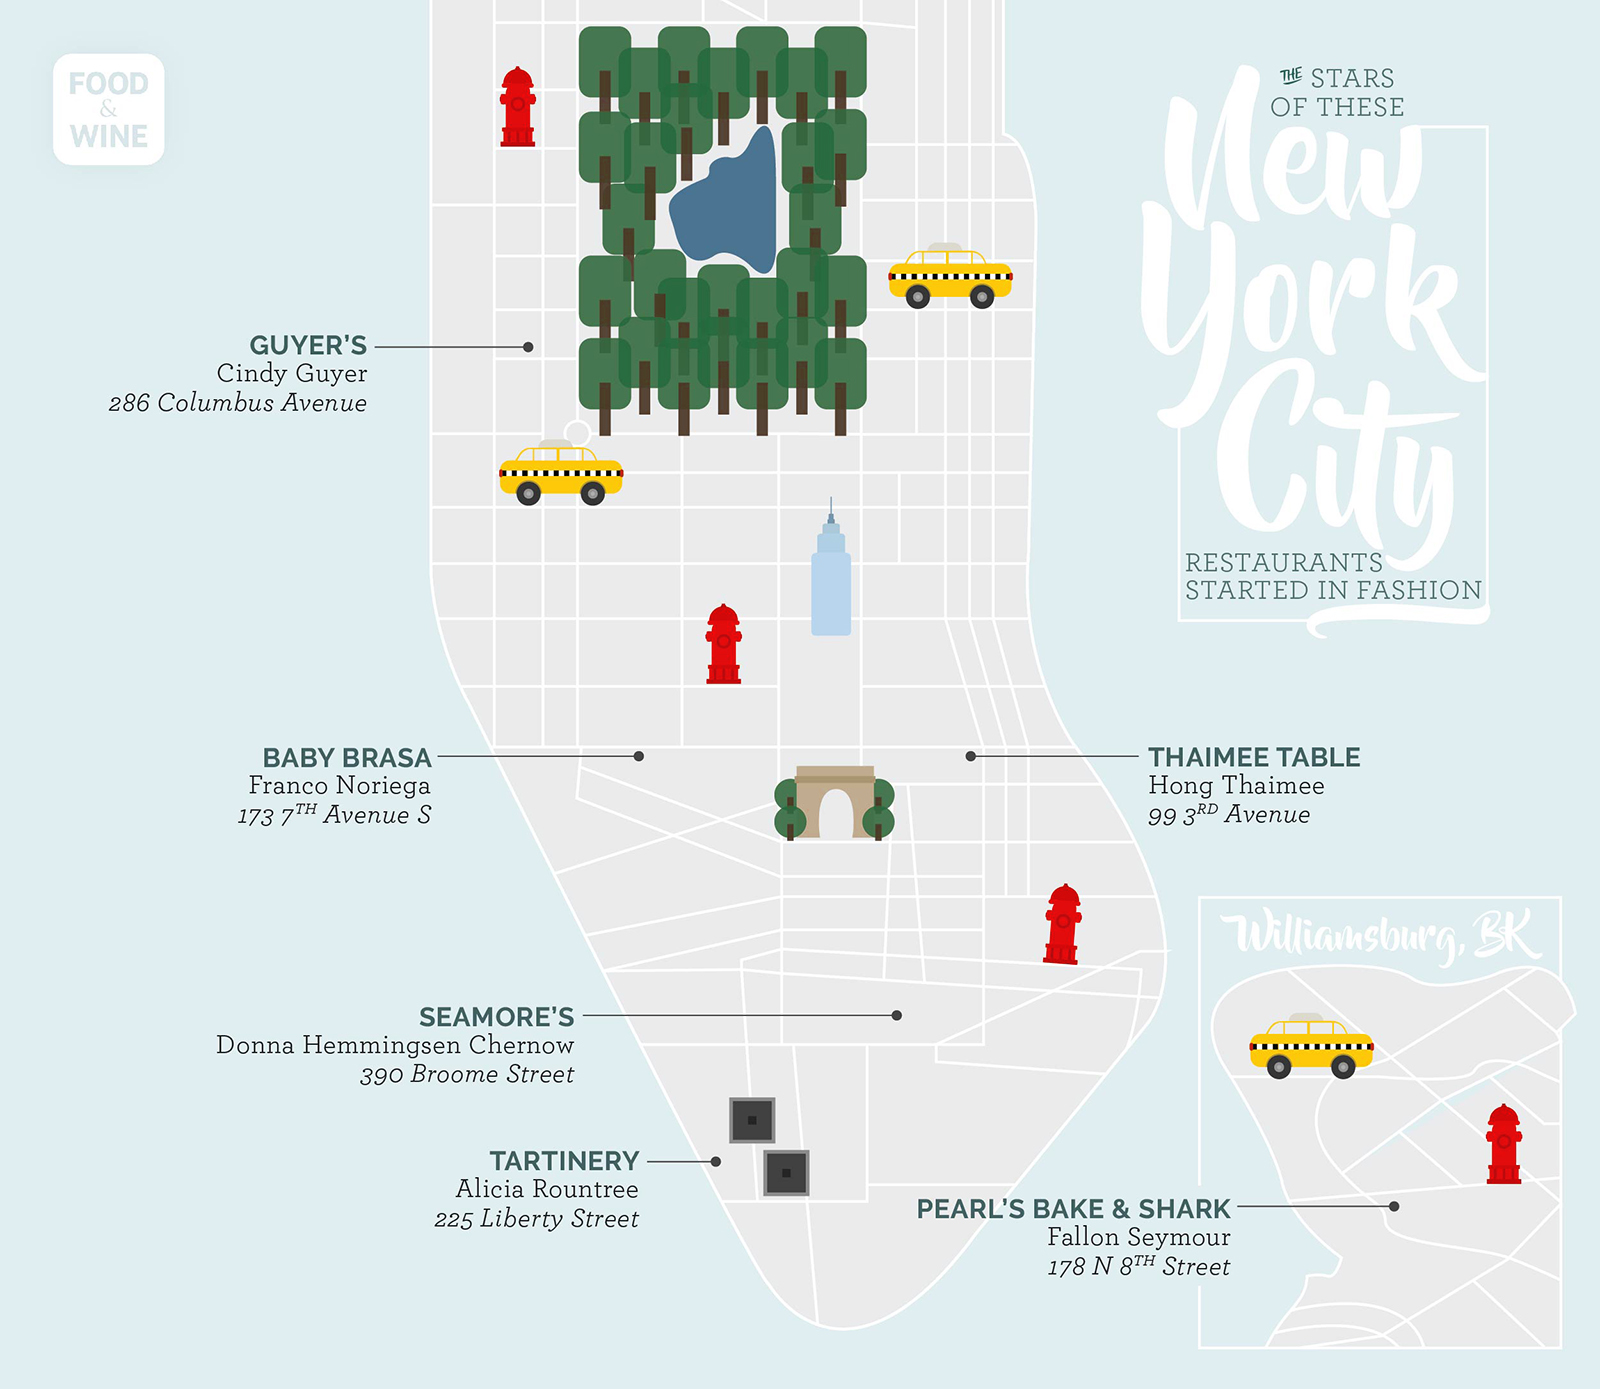 model owned restaurants in new york city